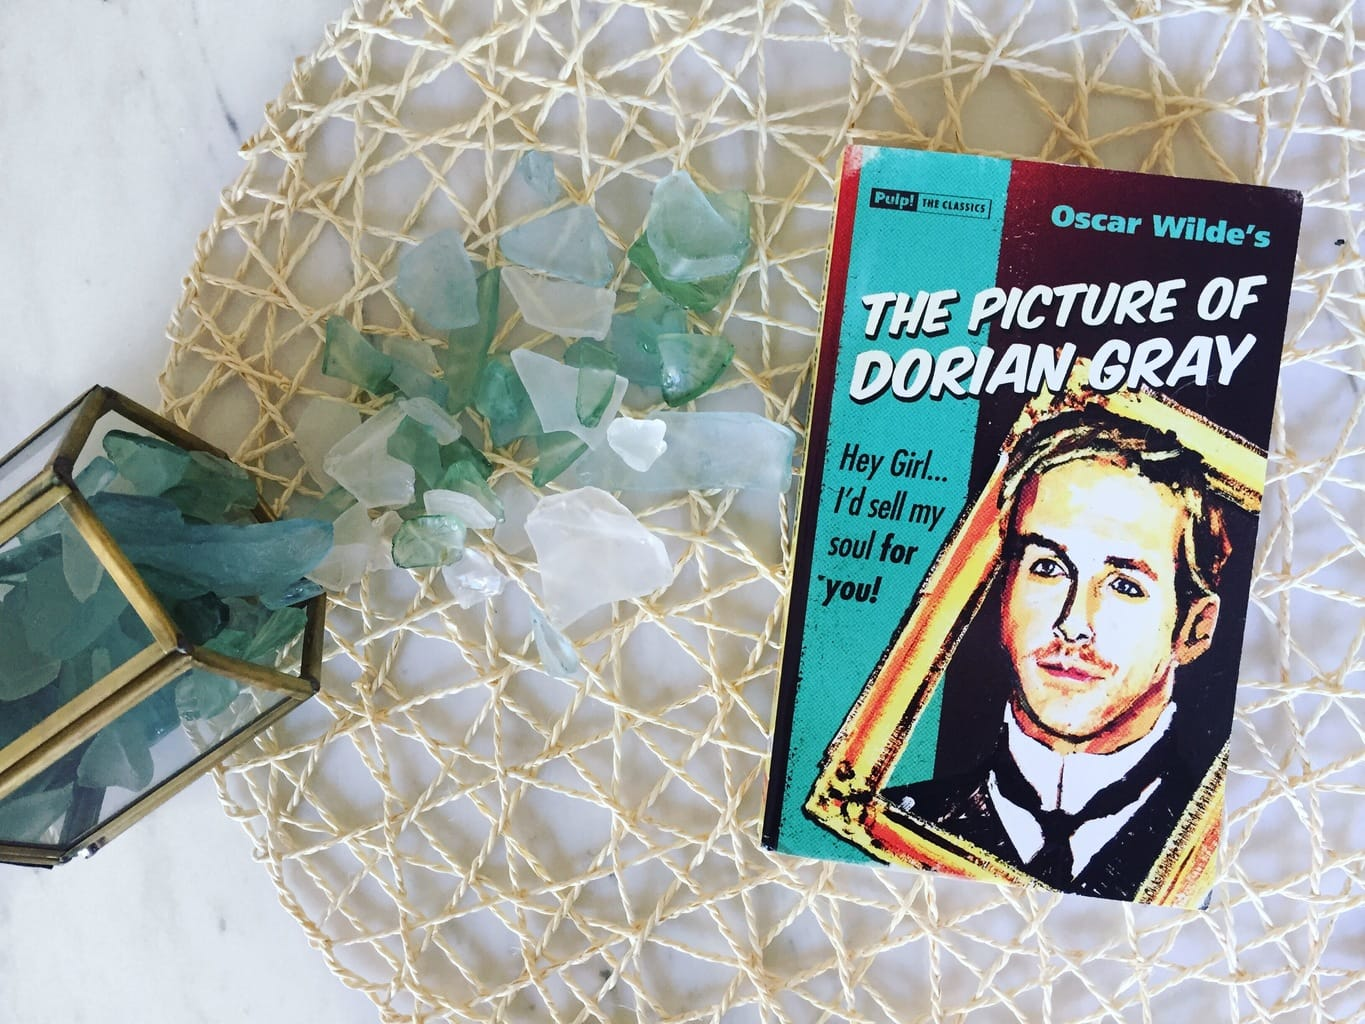 The Picture of Dorian Gray: Rapid-Fire Thoughts on the Characters